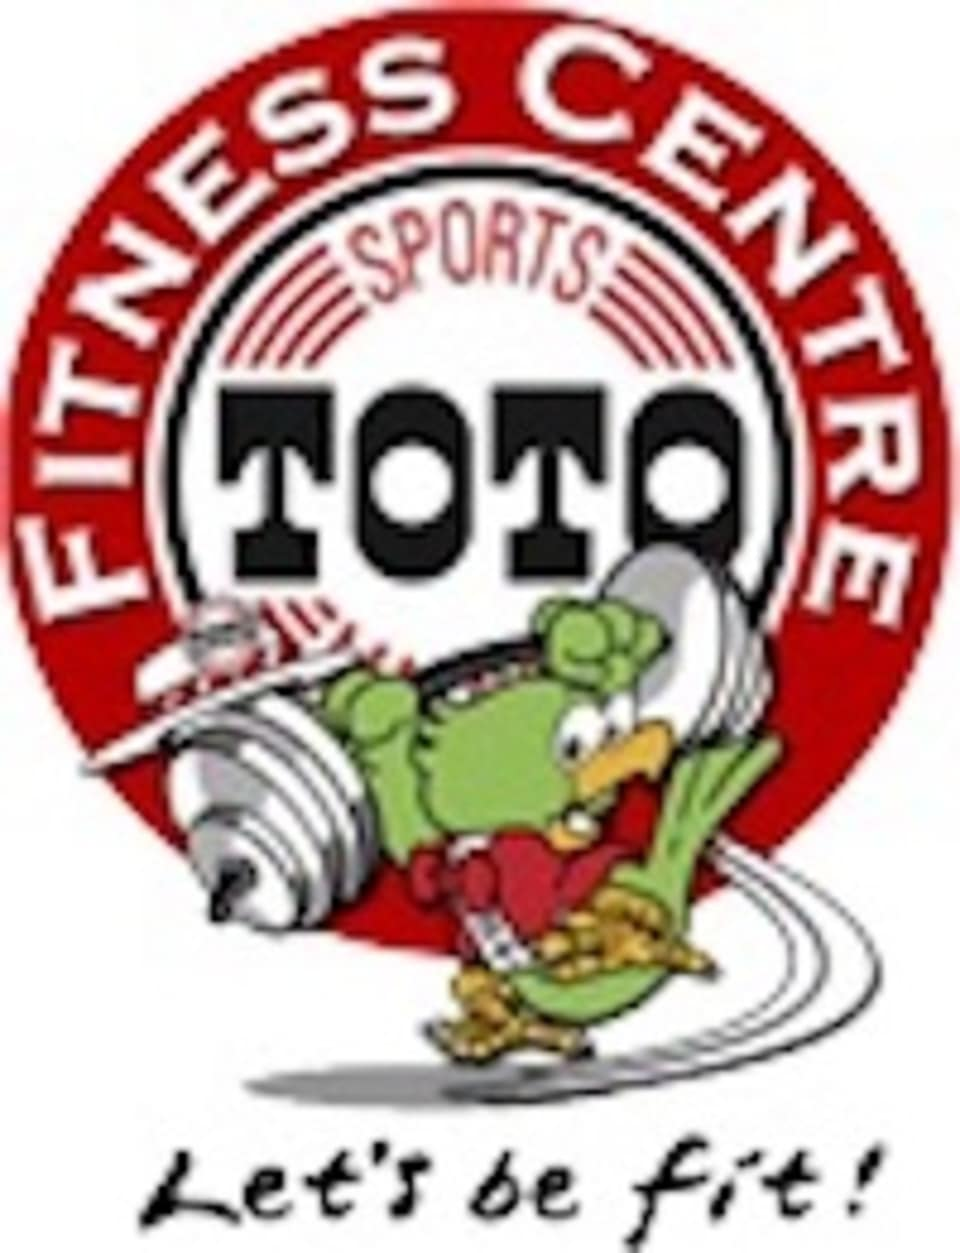 Sports Toto Fitness Centre logo